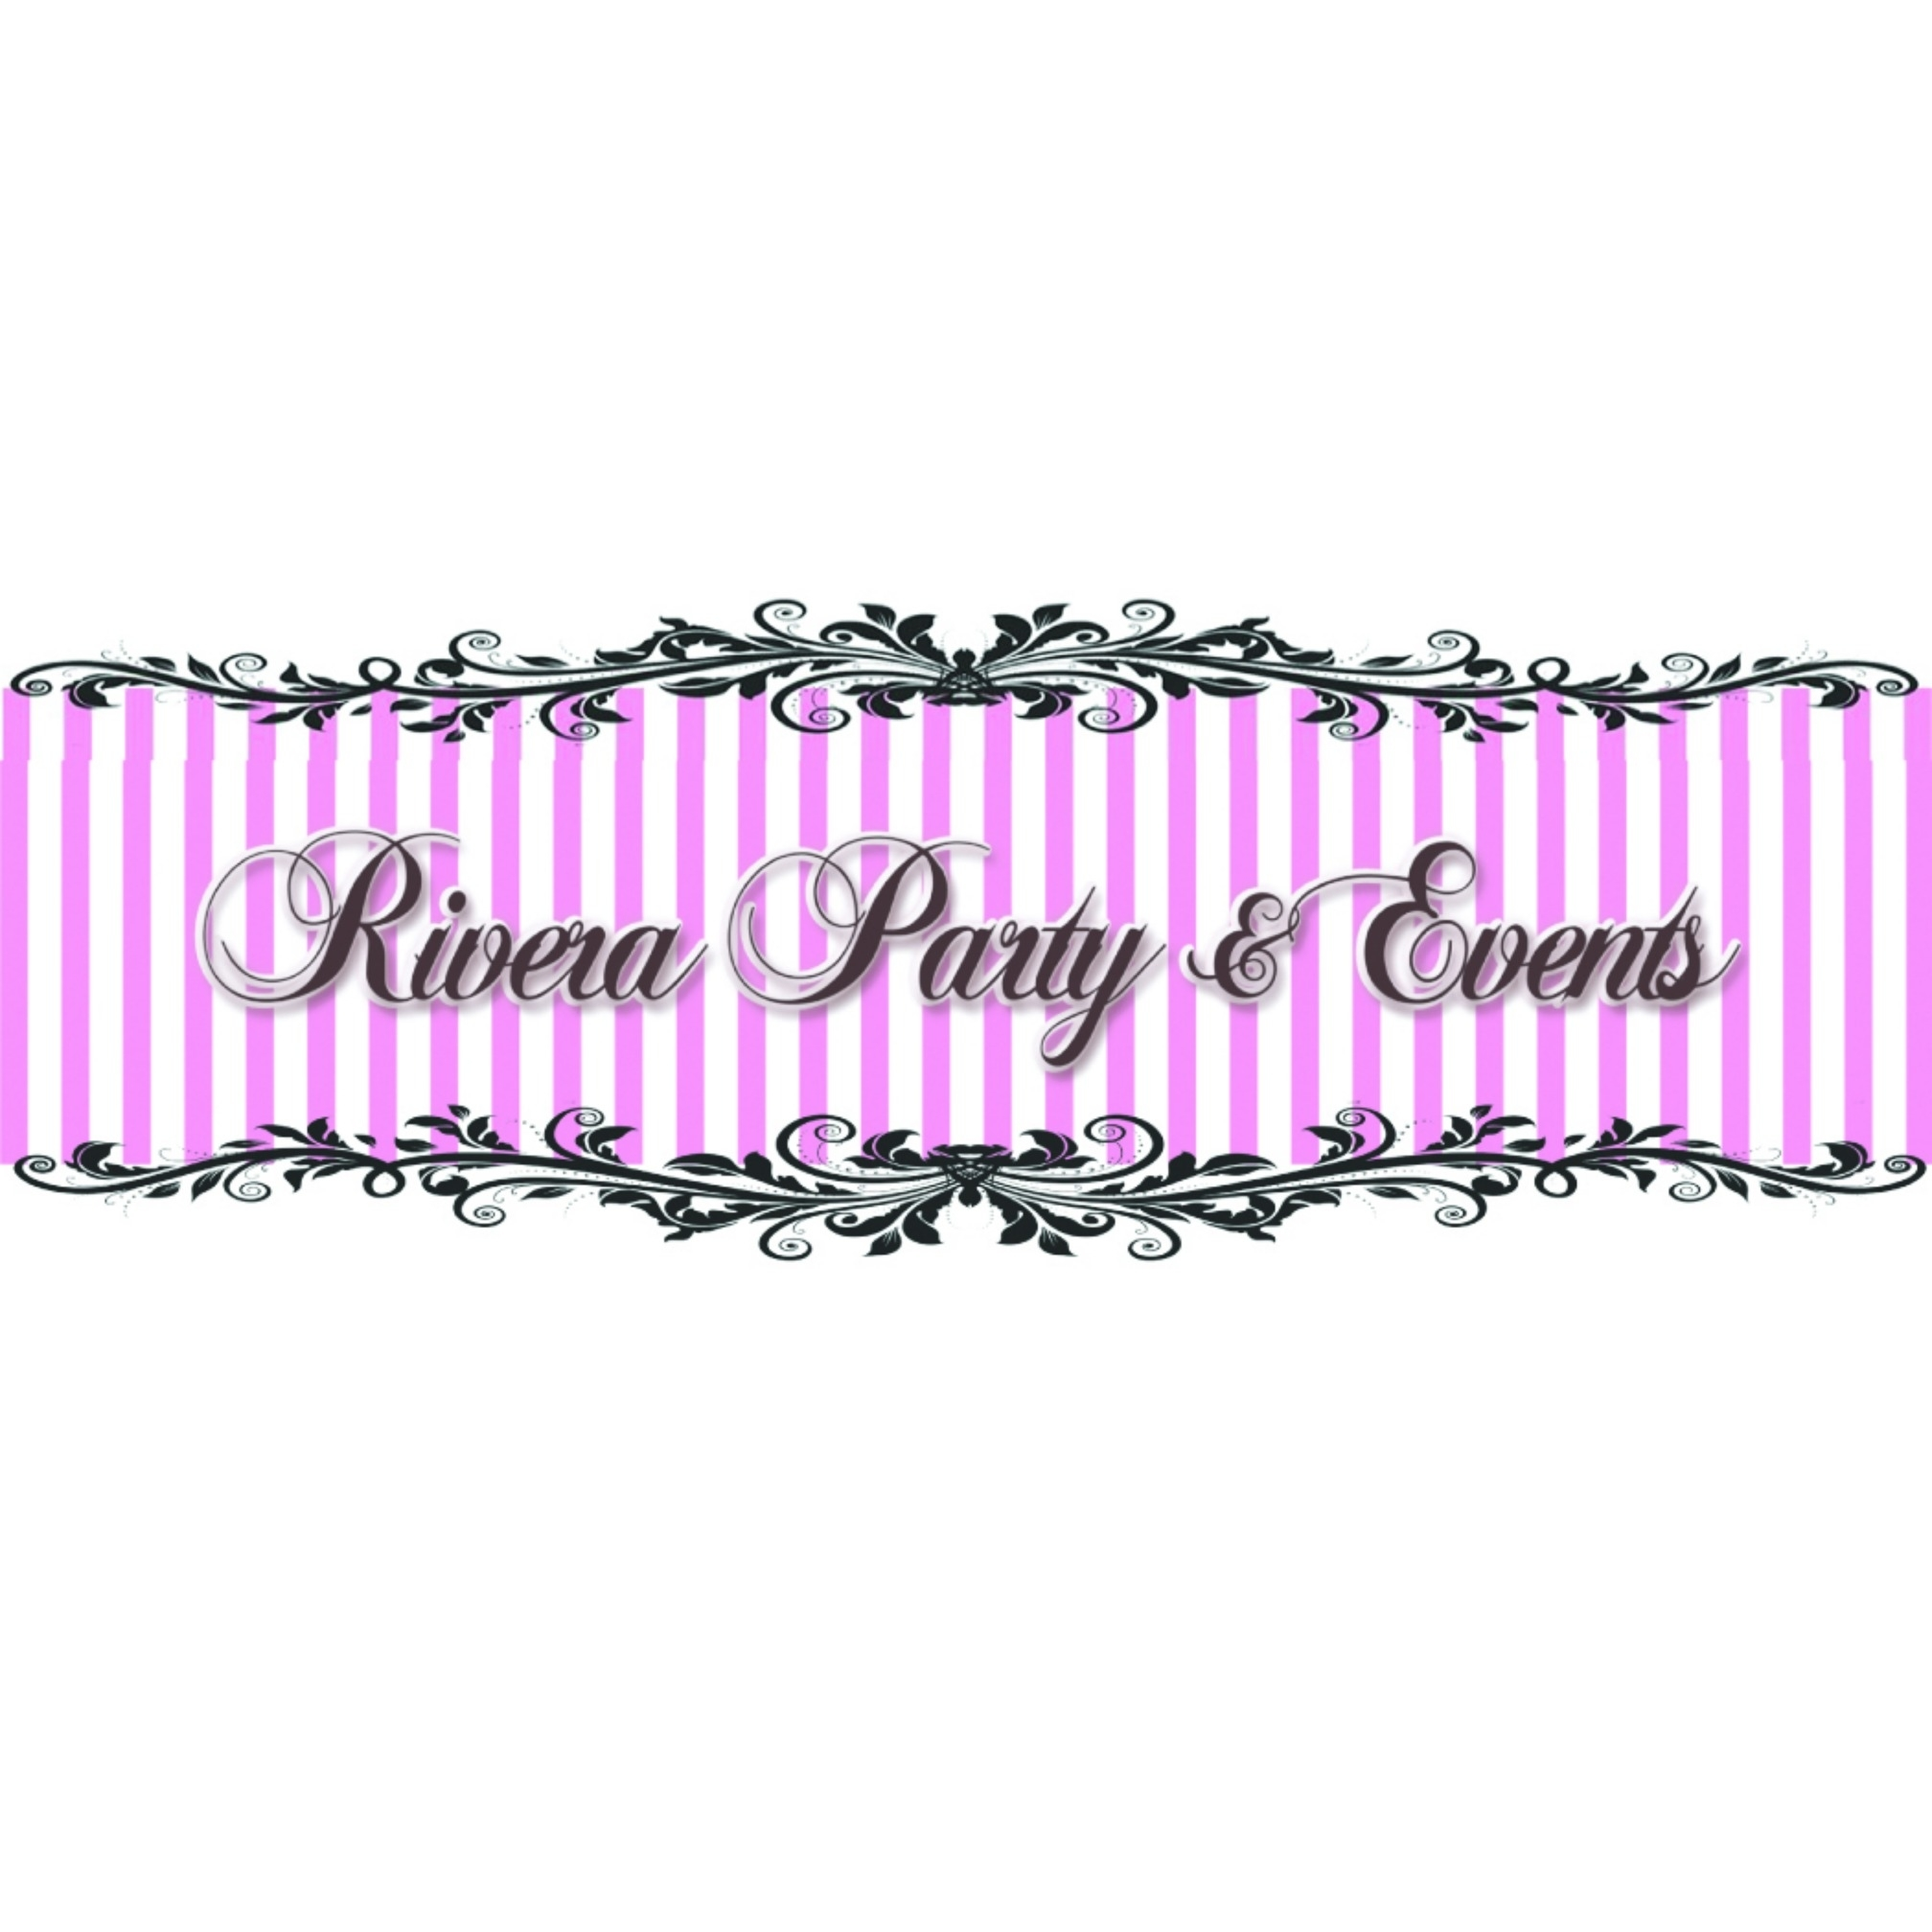 Rivera Party and Events